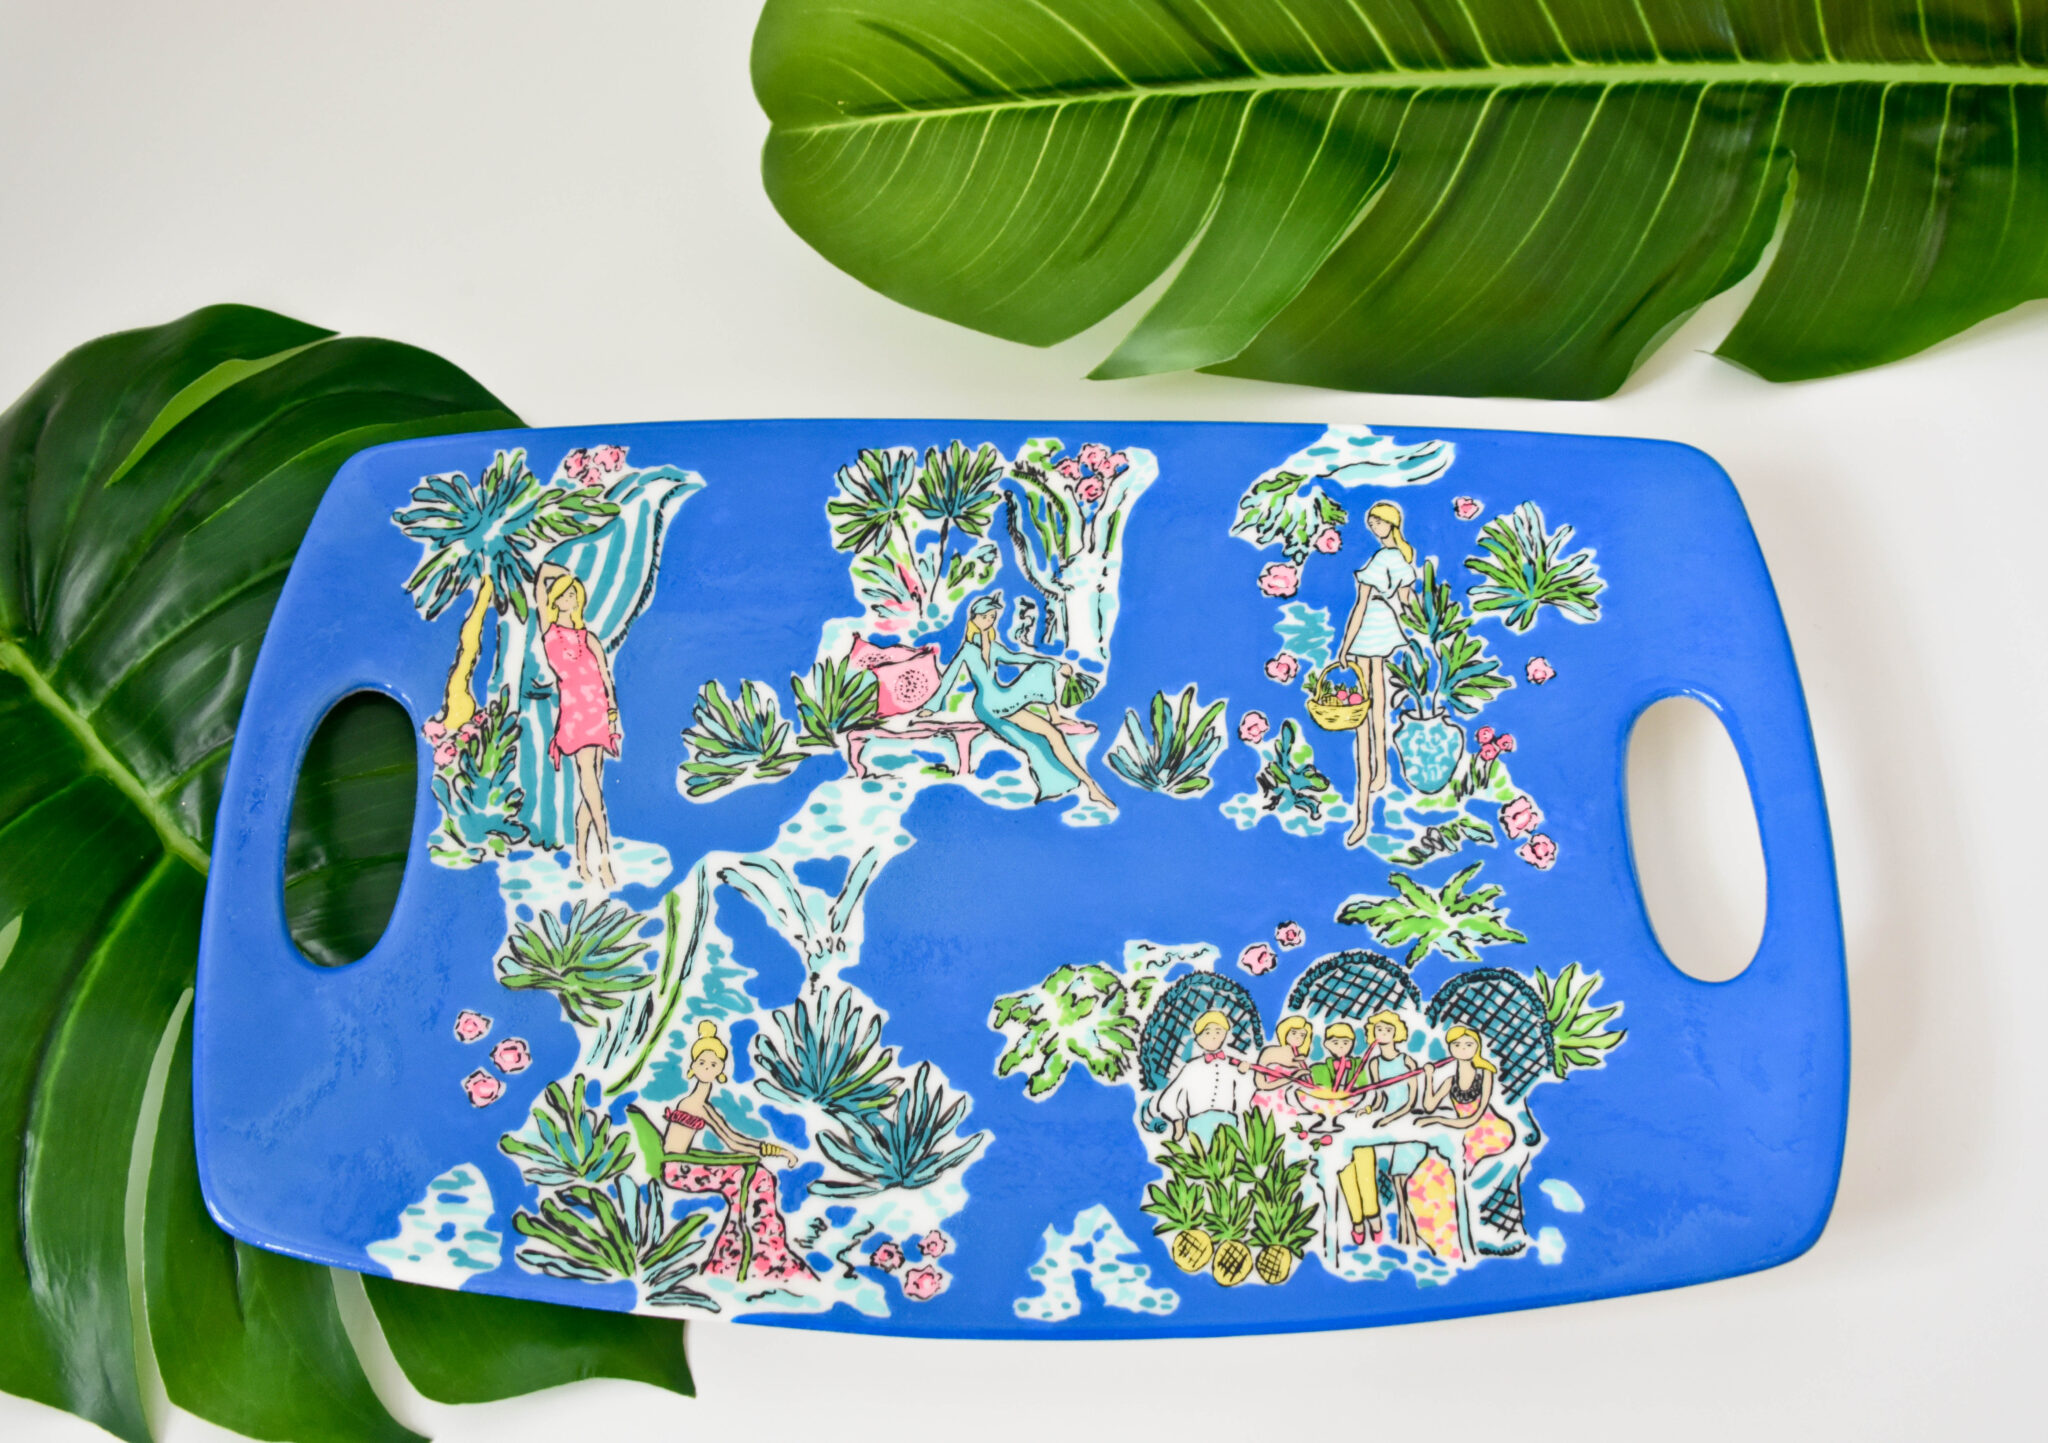 Lilly Pulitzer Dishes